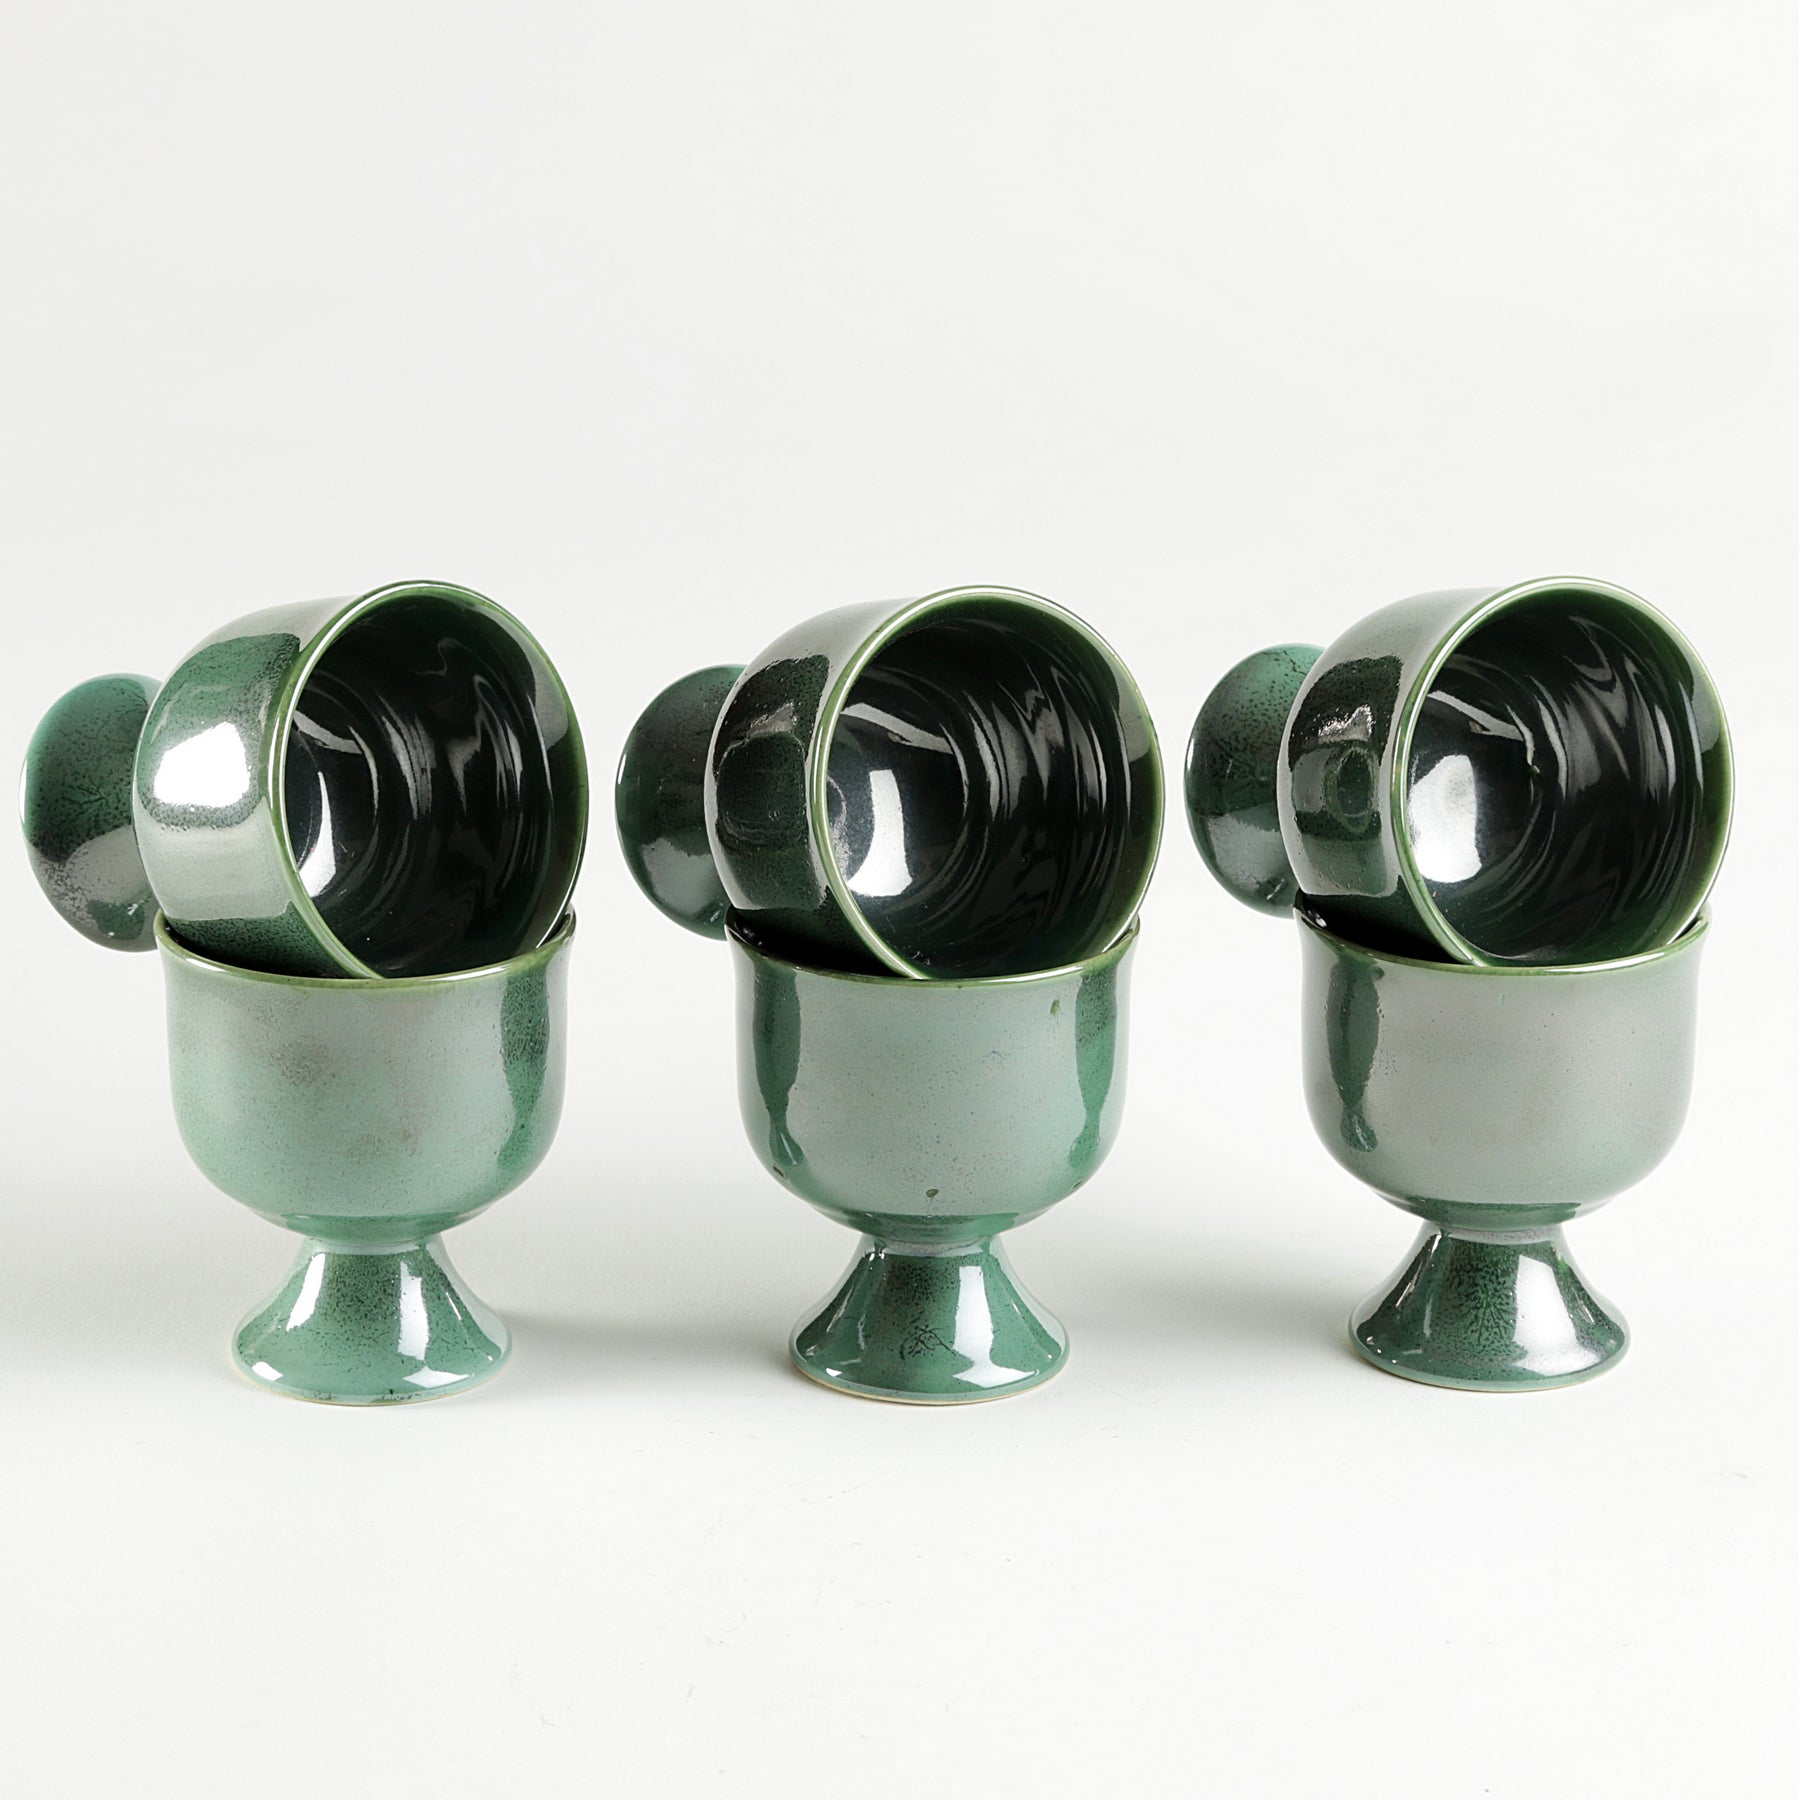 Metallic Green Icecream Serving Set of 6 pcs